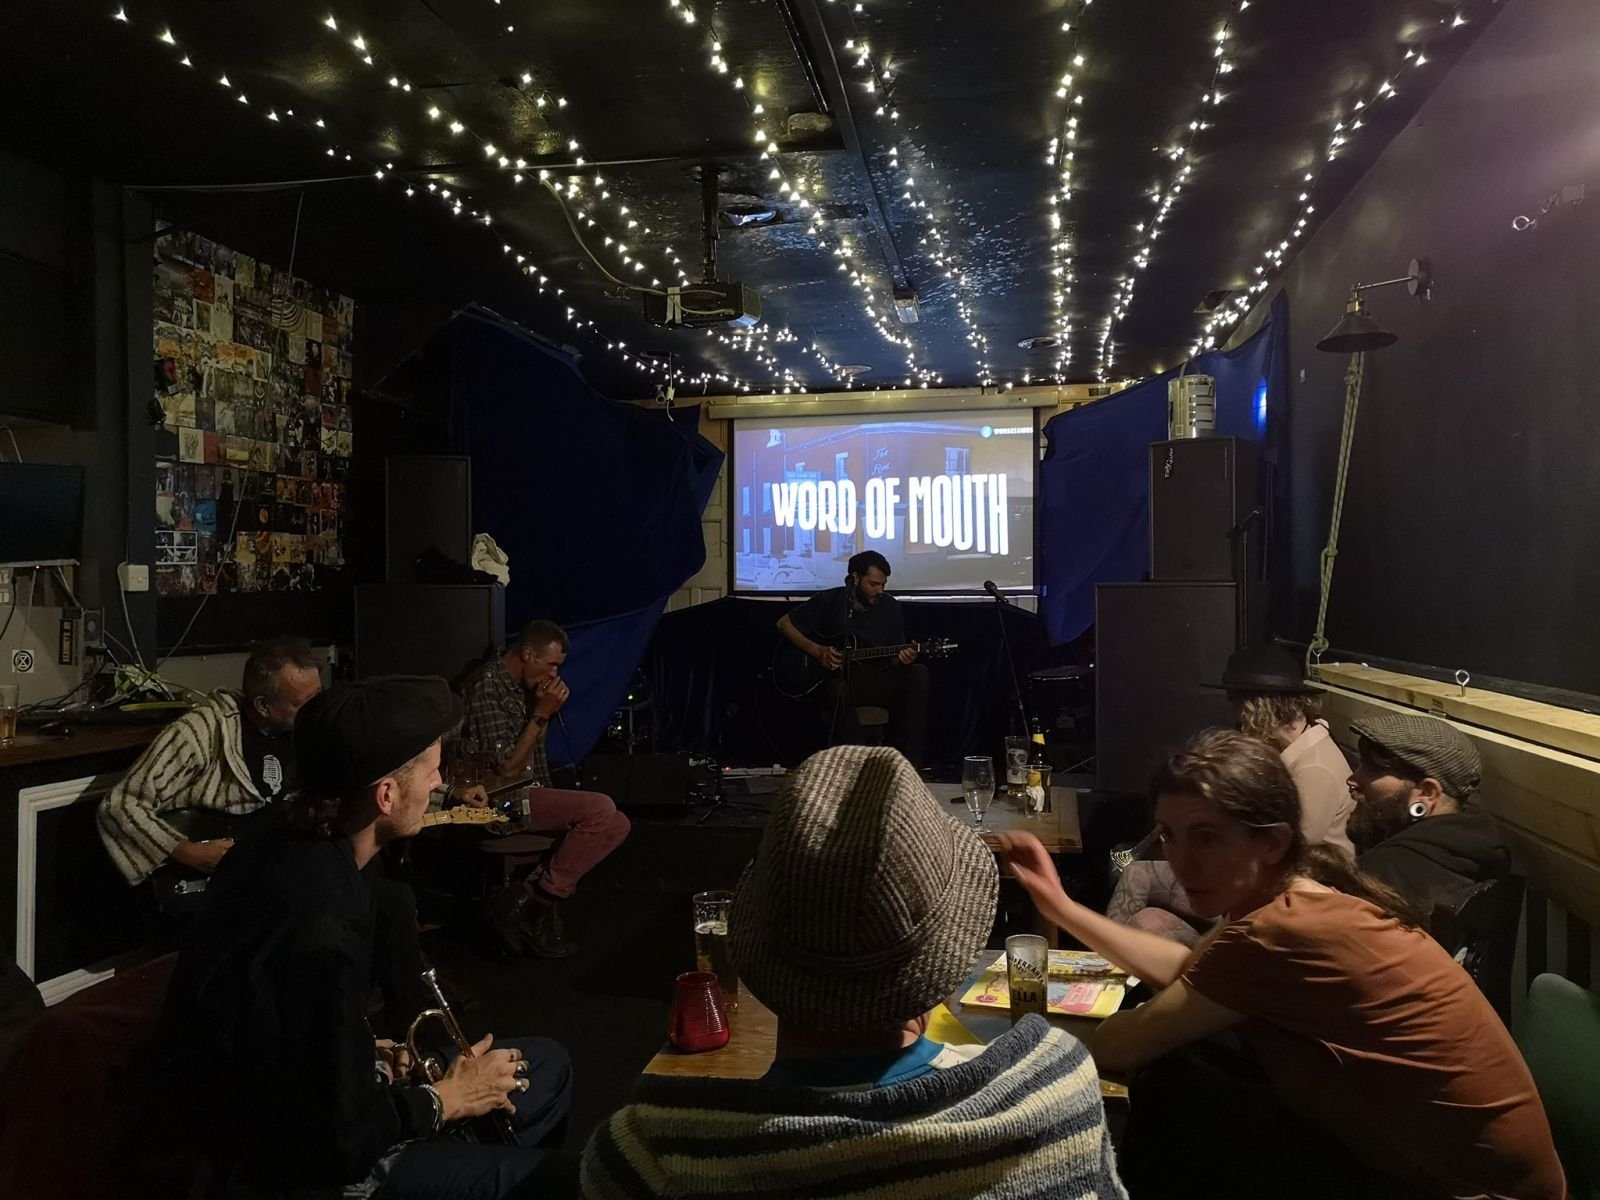 Word of Mouth is a new open mic night for Bristol